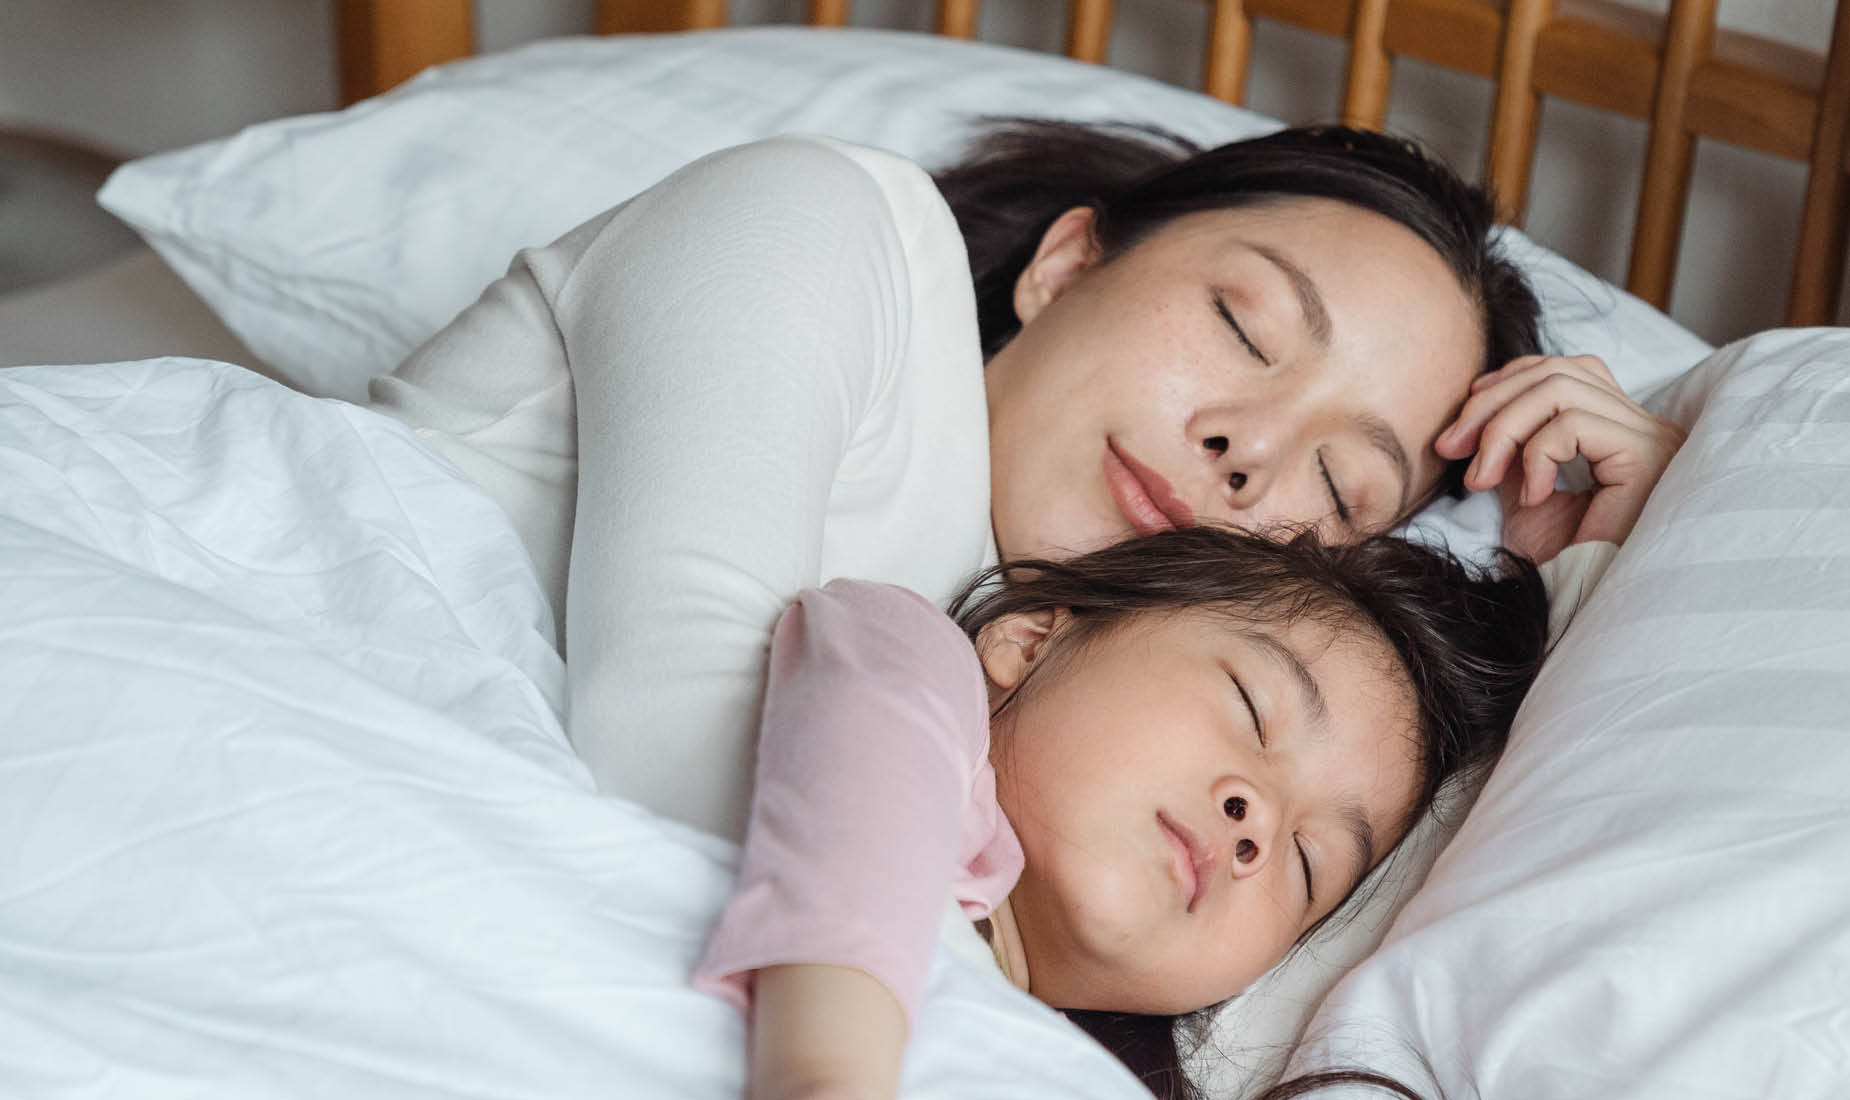 A mother and daughter of East Asian descent cuddling in bed looking contented.